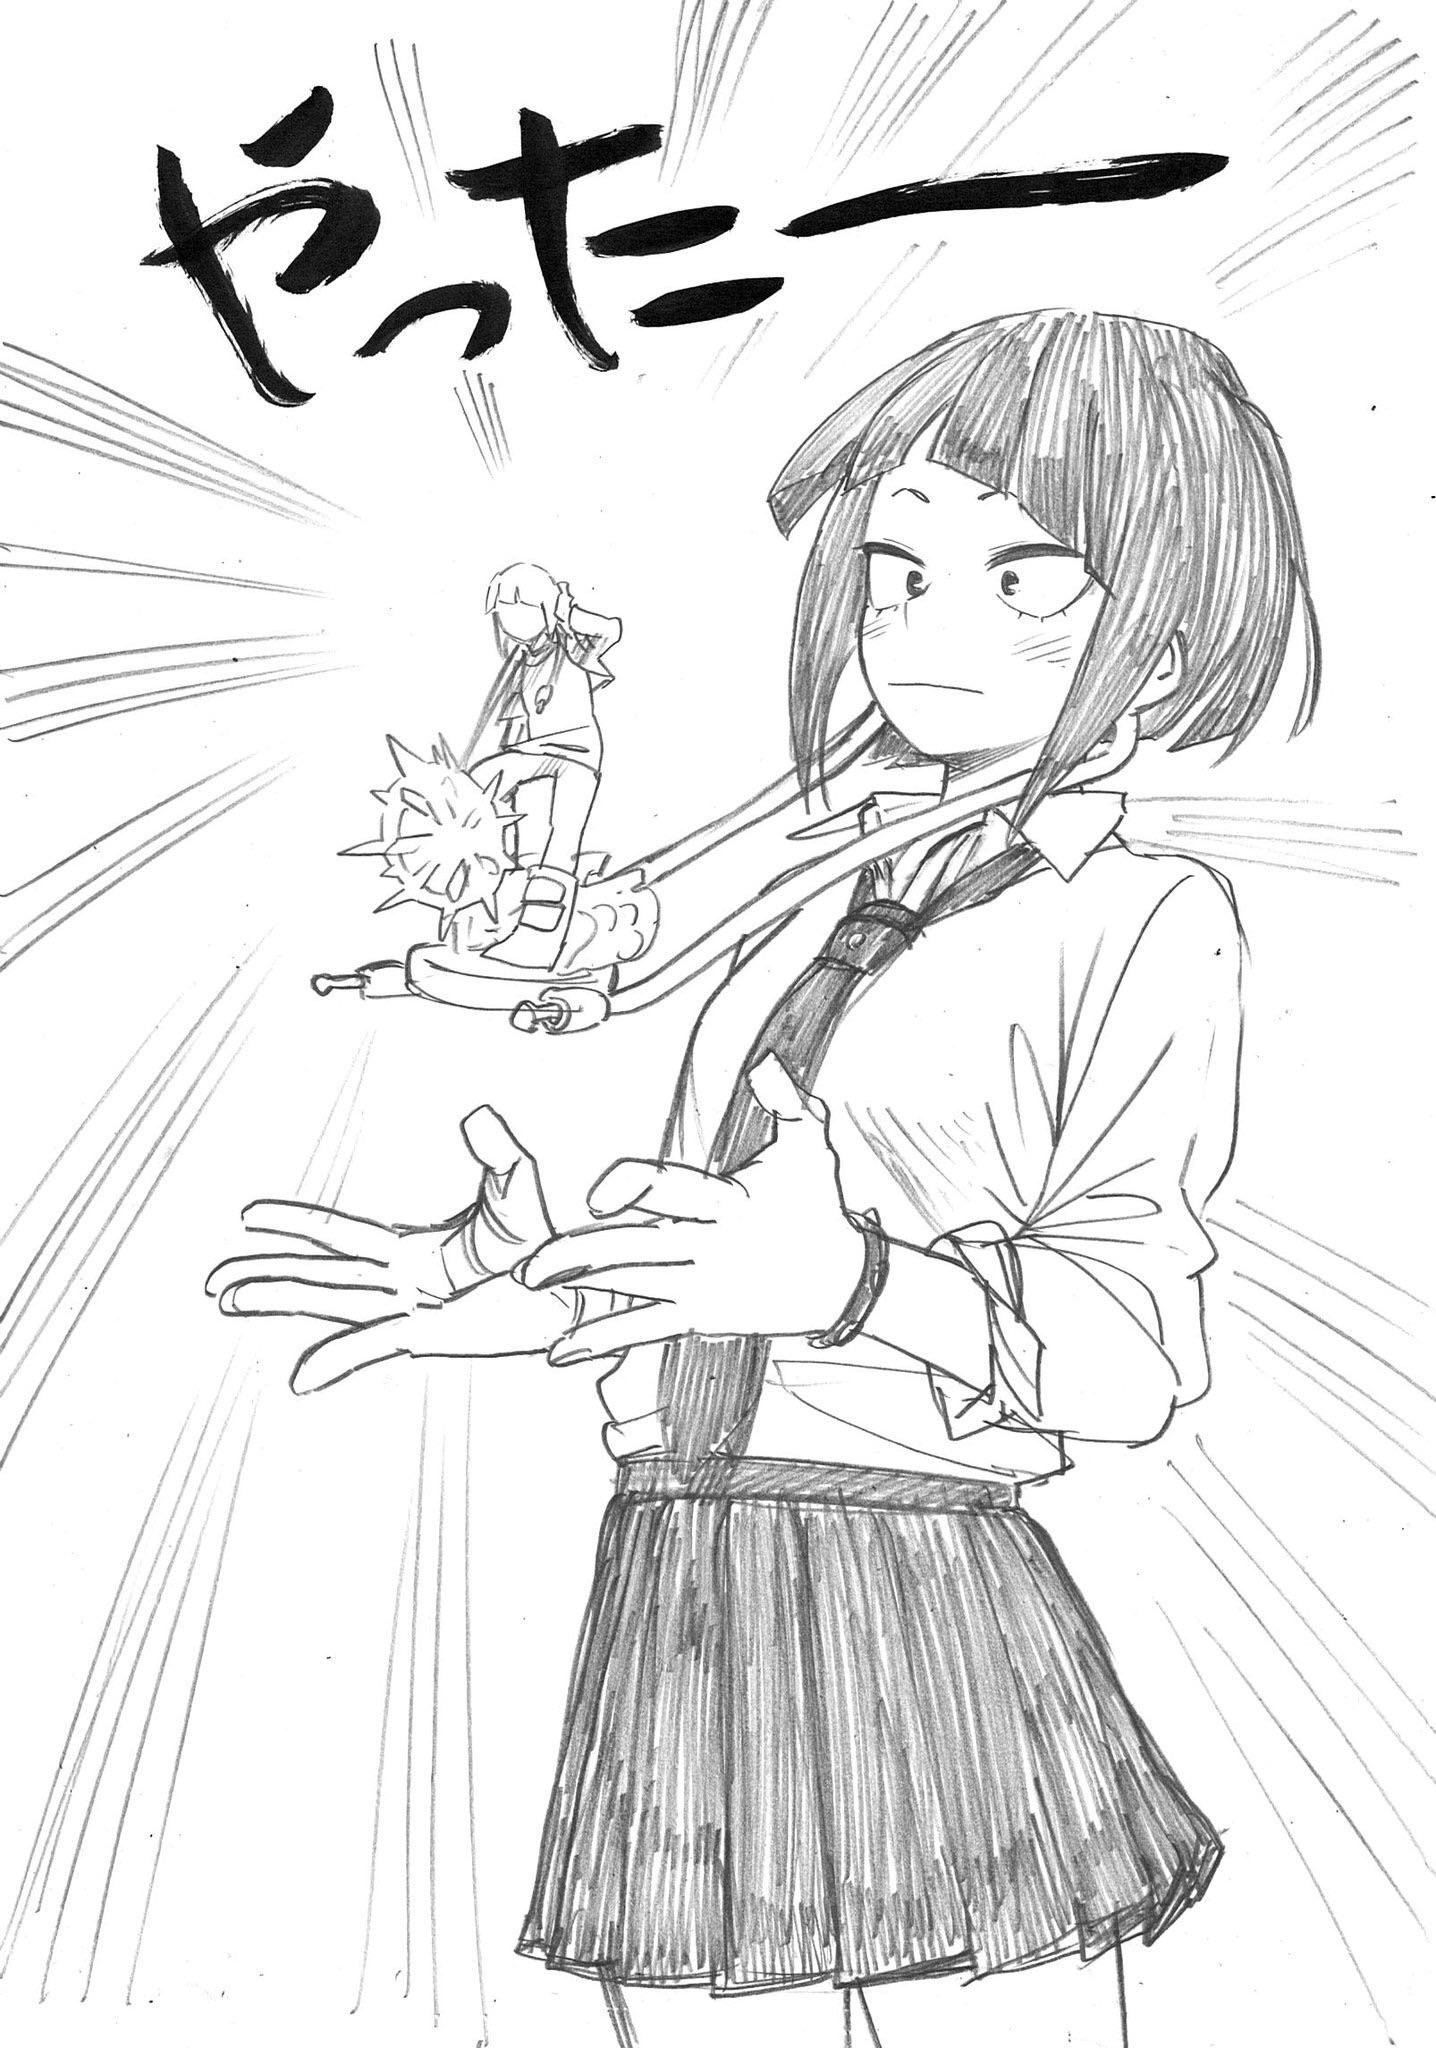 Jirou Sketch By Horikoshi My Hero Academia Know Your Meme